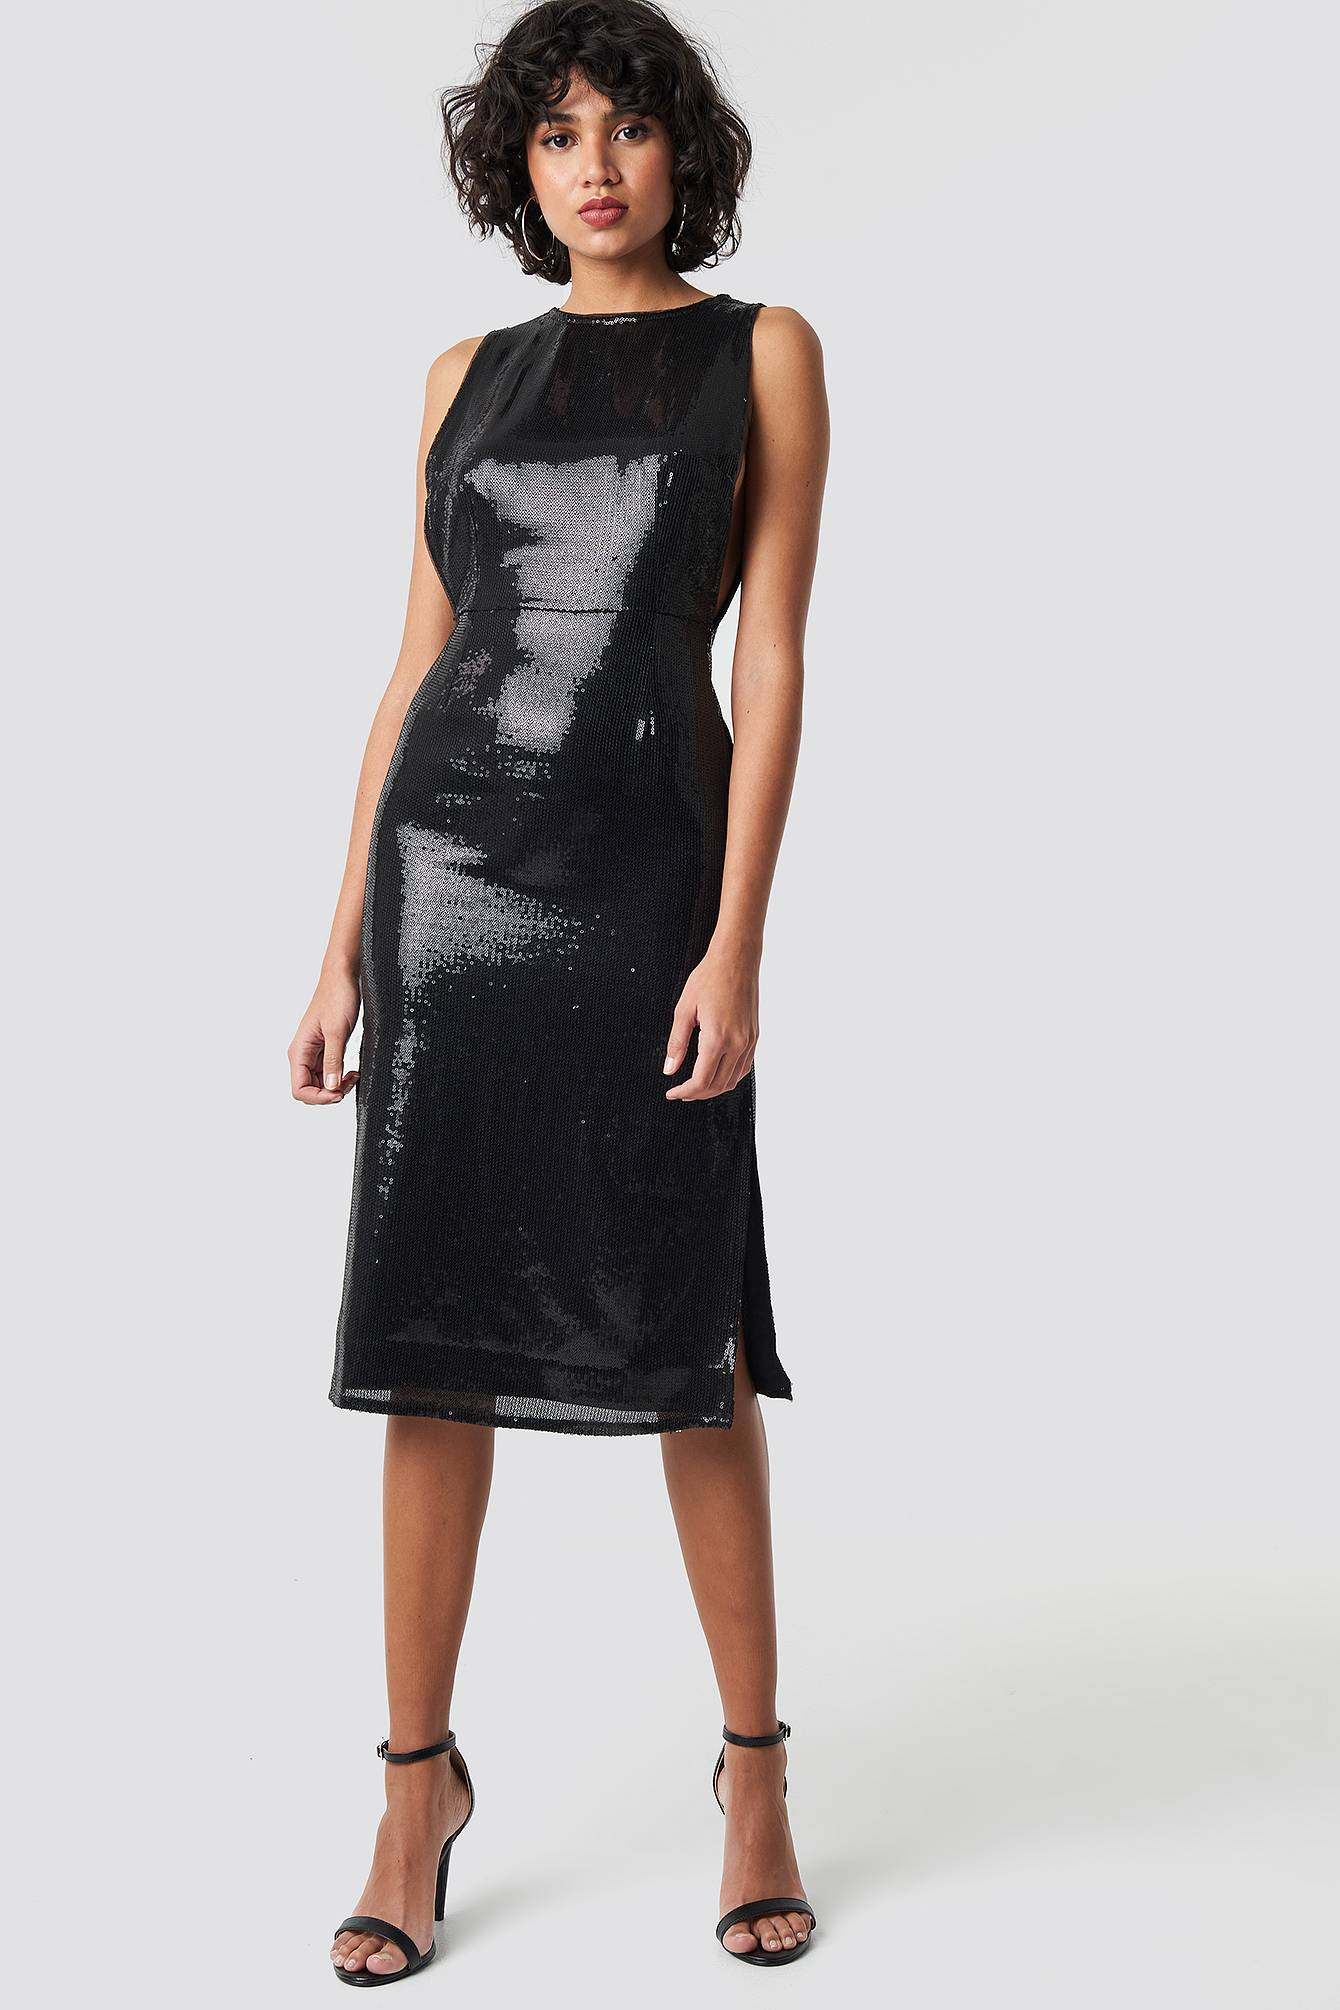 Image of NA-KD Party Open Side Sequin Midi Dress - Black